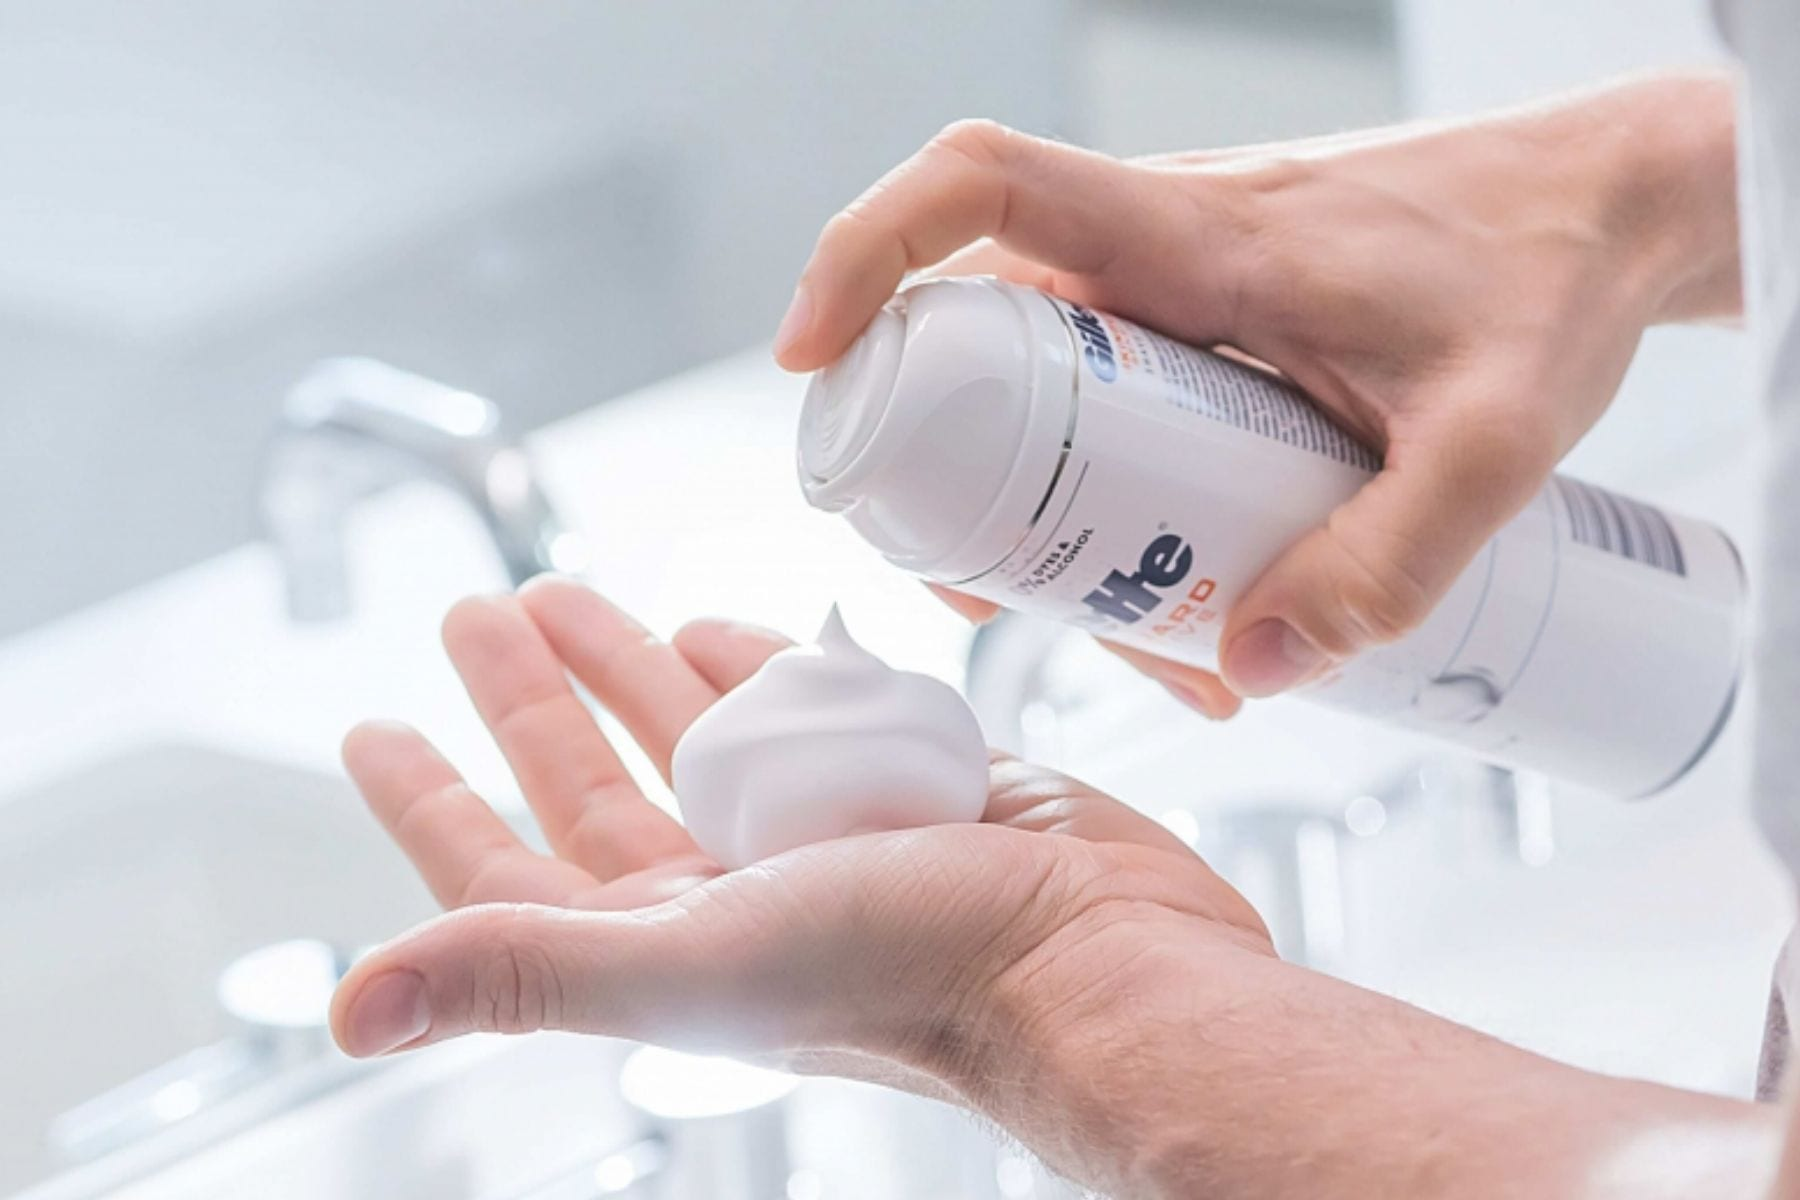 Do You Really Need Shaving Cream? The Science Behind Shave Gels and Foams